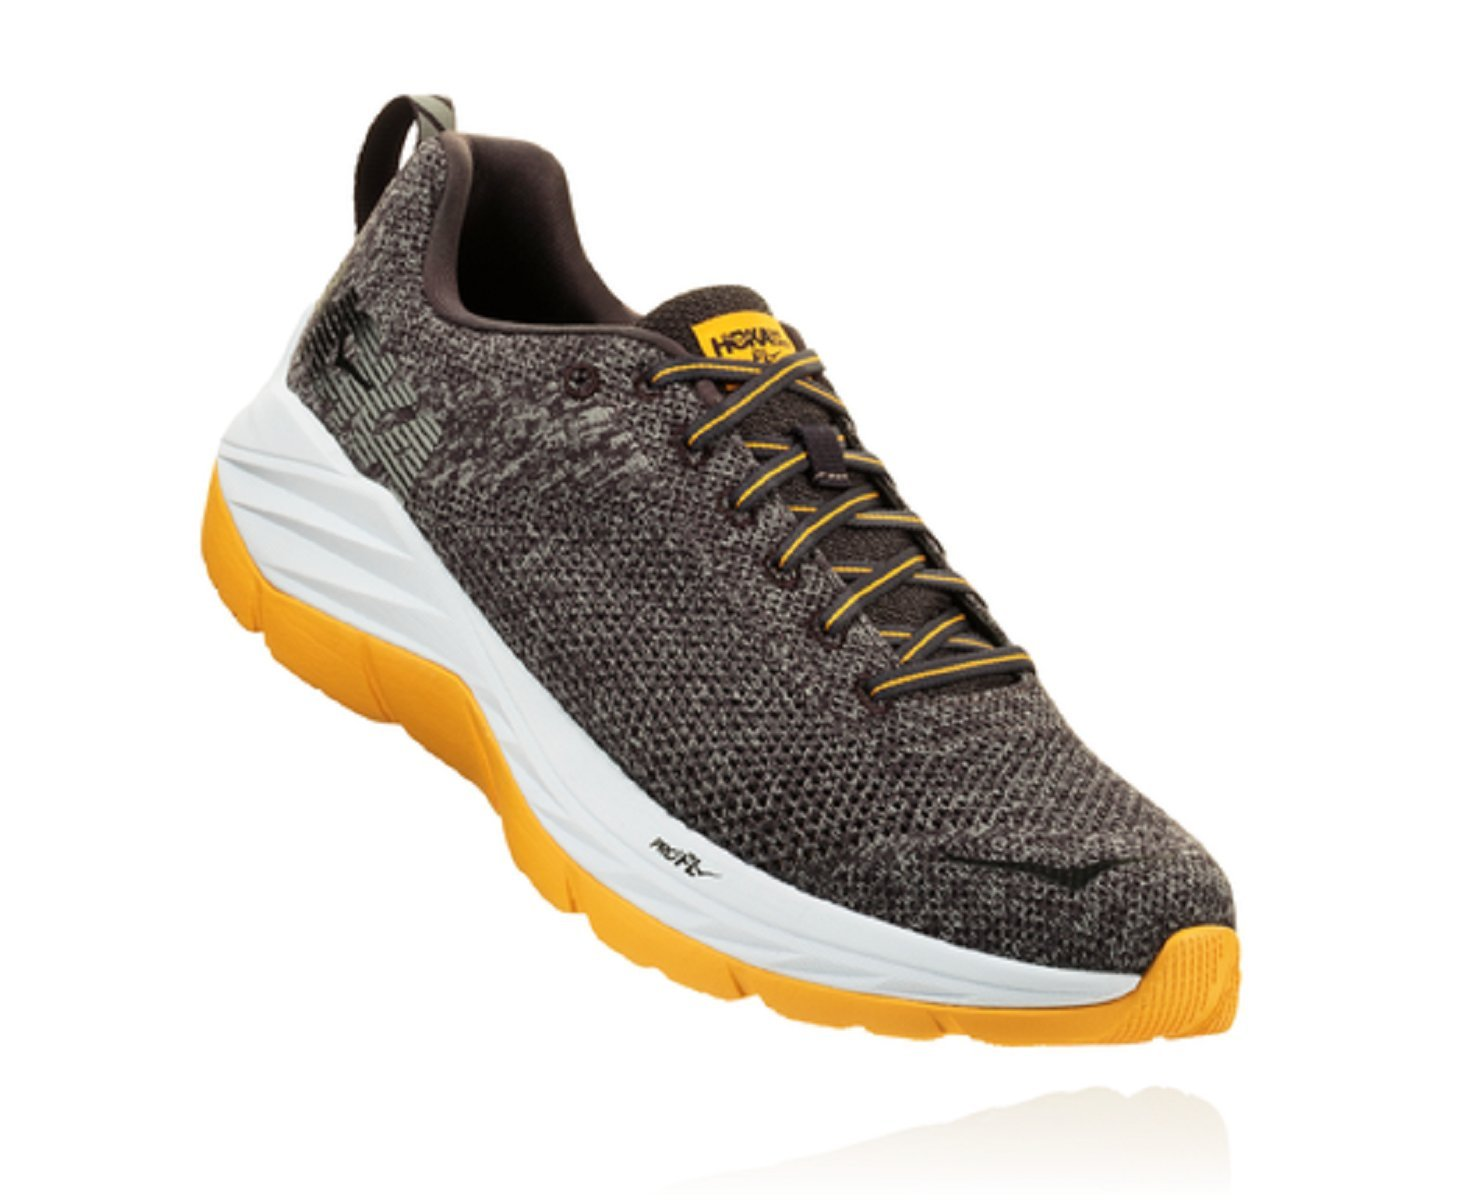 Hoka One - Zapatillas de Running de Sintético para Hombre Nine Iron/Alloy 47 1/3 EU|'Nine Iron/Alloy'